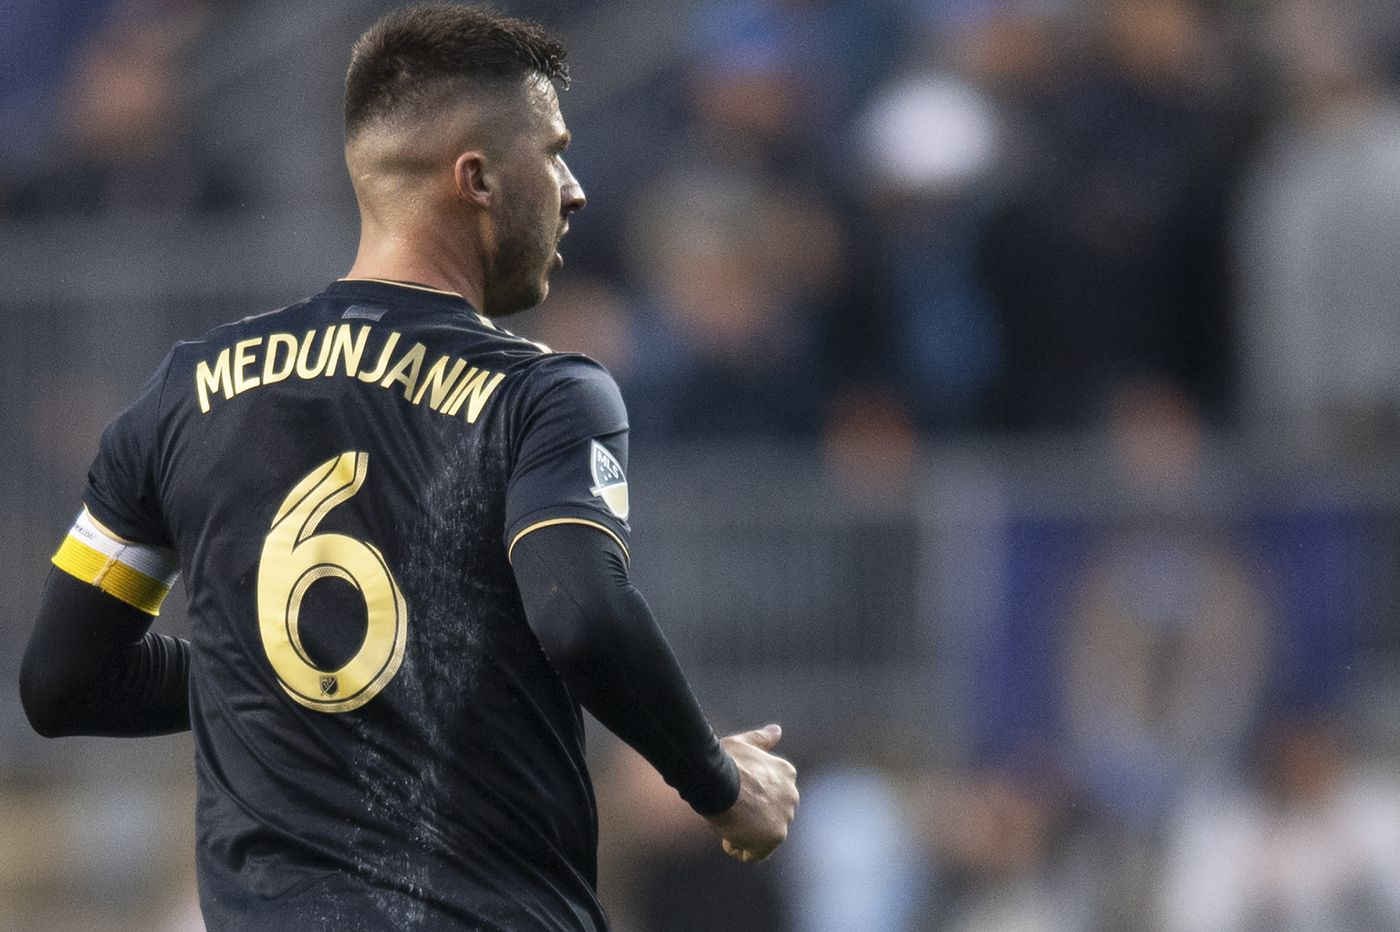 Haris Medunjanin didn't want to leave Philadelphia but knew his time with the Union was up